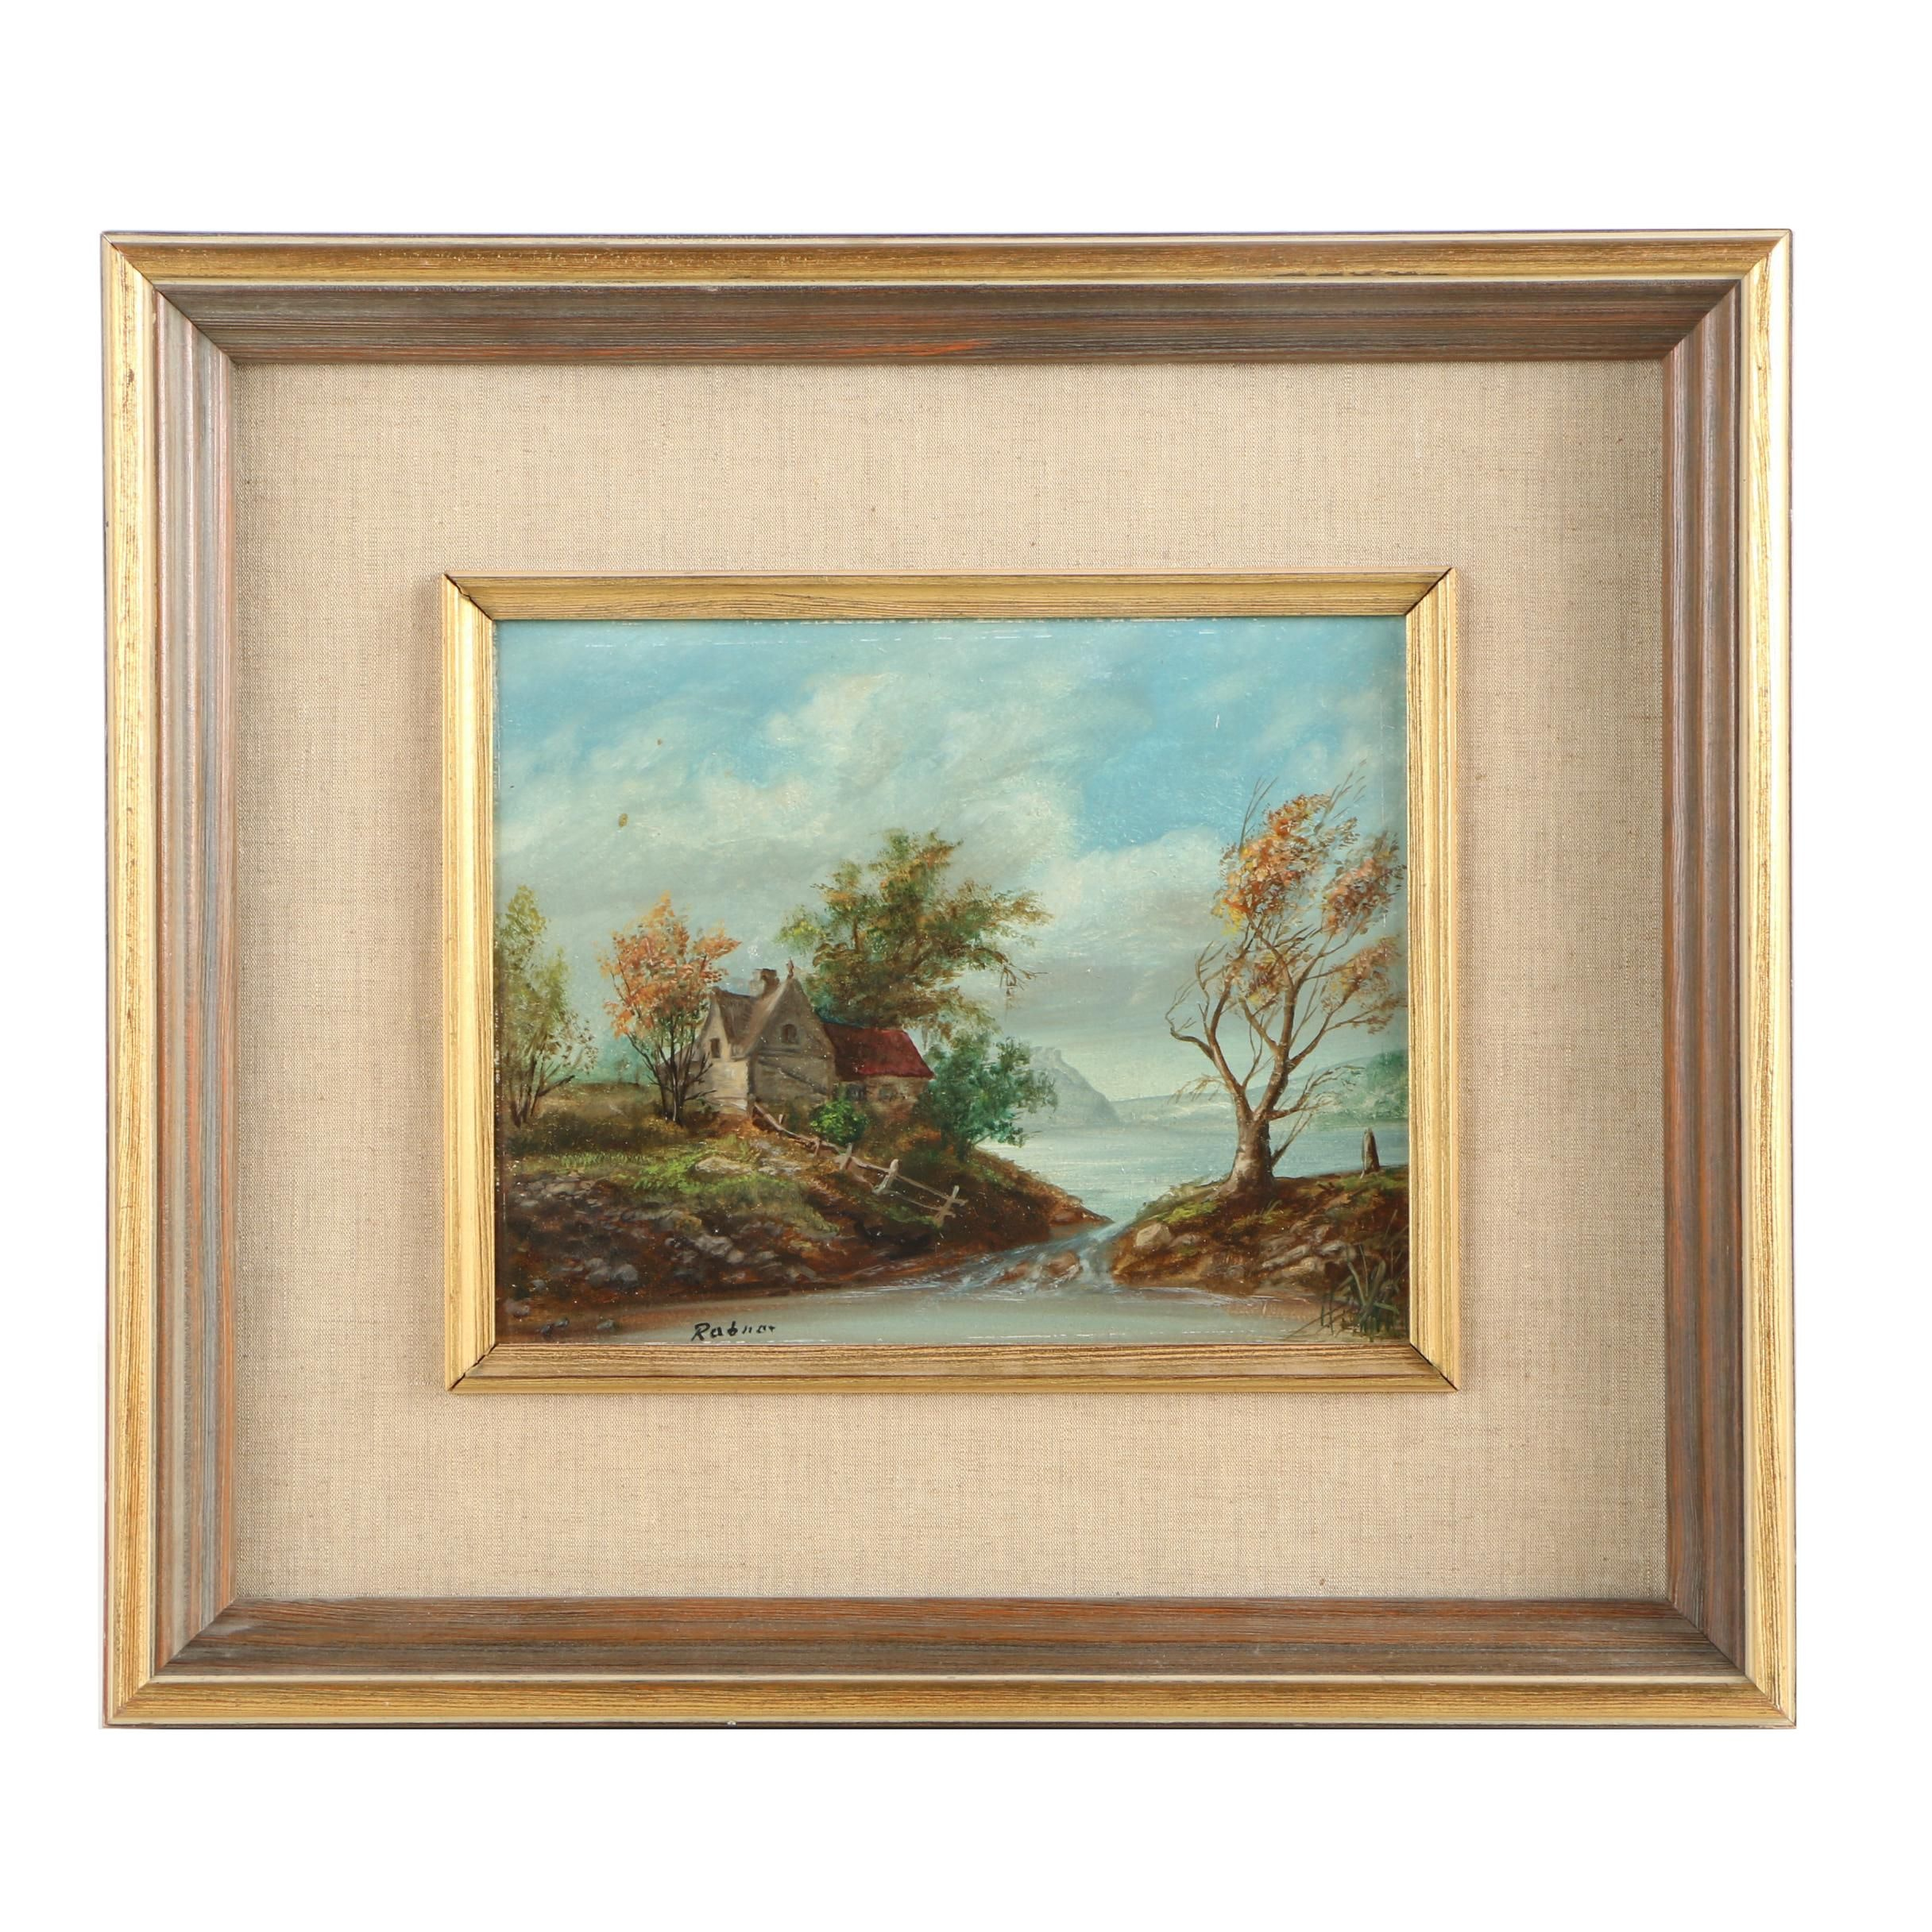 Rabner Oil Painting of a Waterfront Landscape